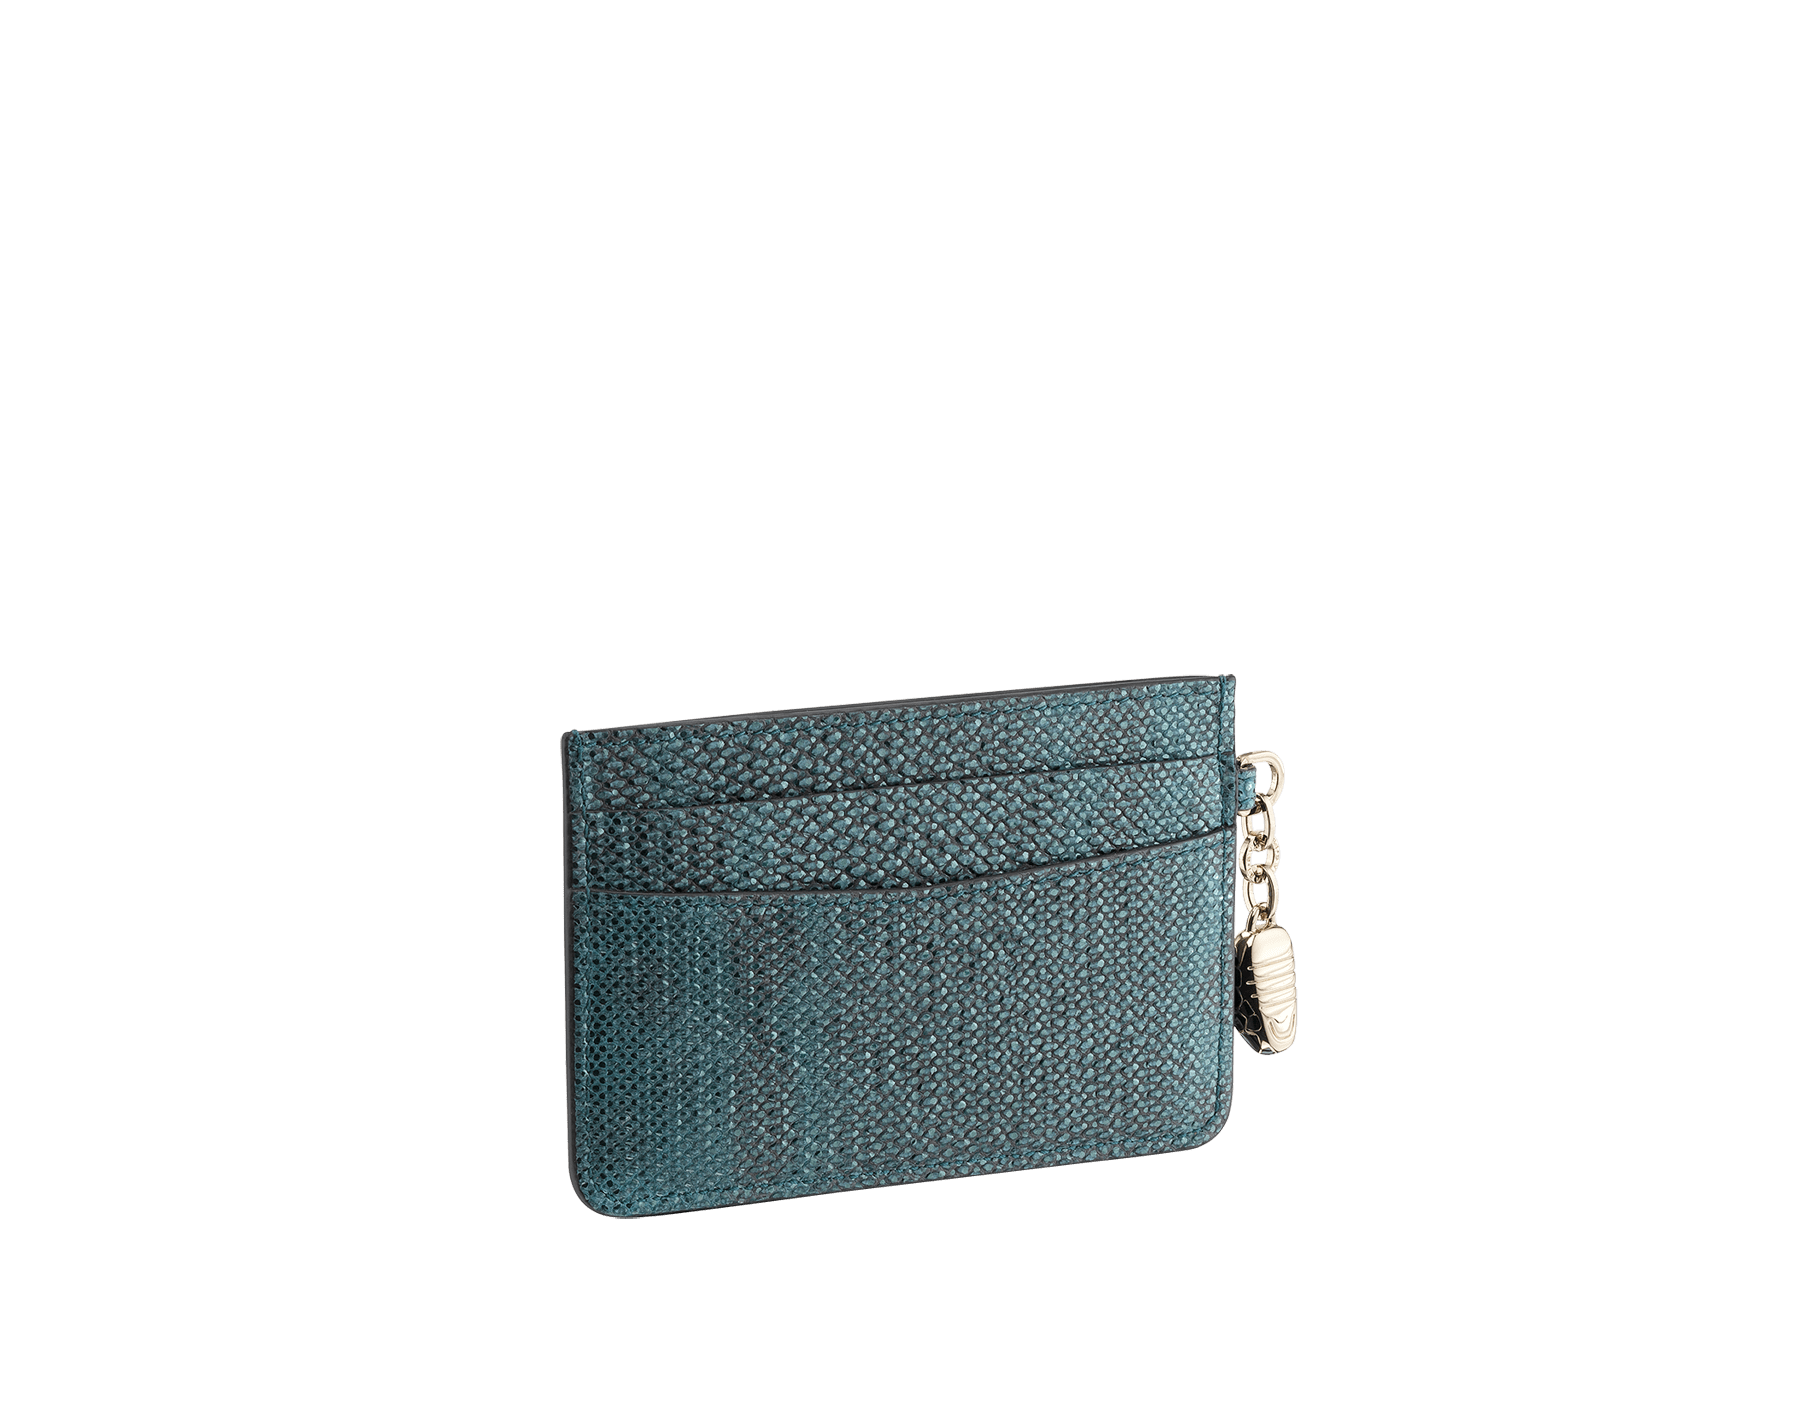 Serpenti Forever credit card holder in deep jade metallic karung skin and deep jade calf leather. Iconic snakehead charm in black and glitter deep jade enamel, with black enamel eyes. 288081 image 2